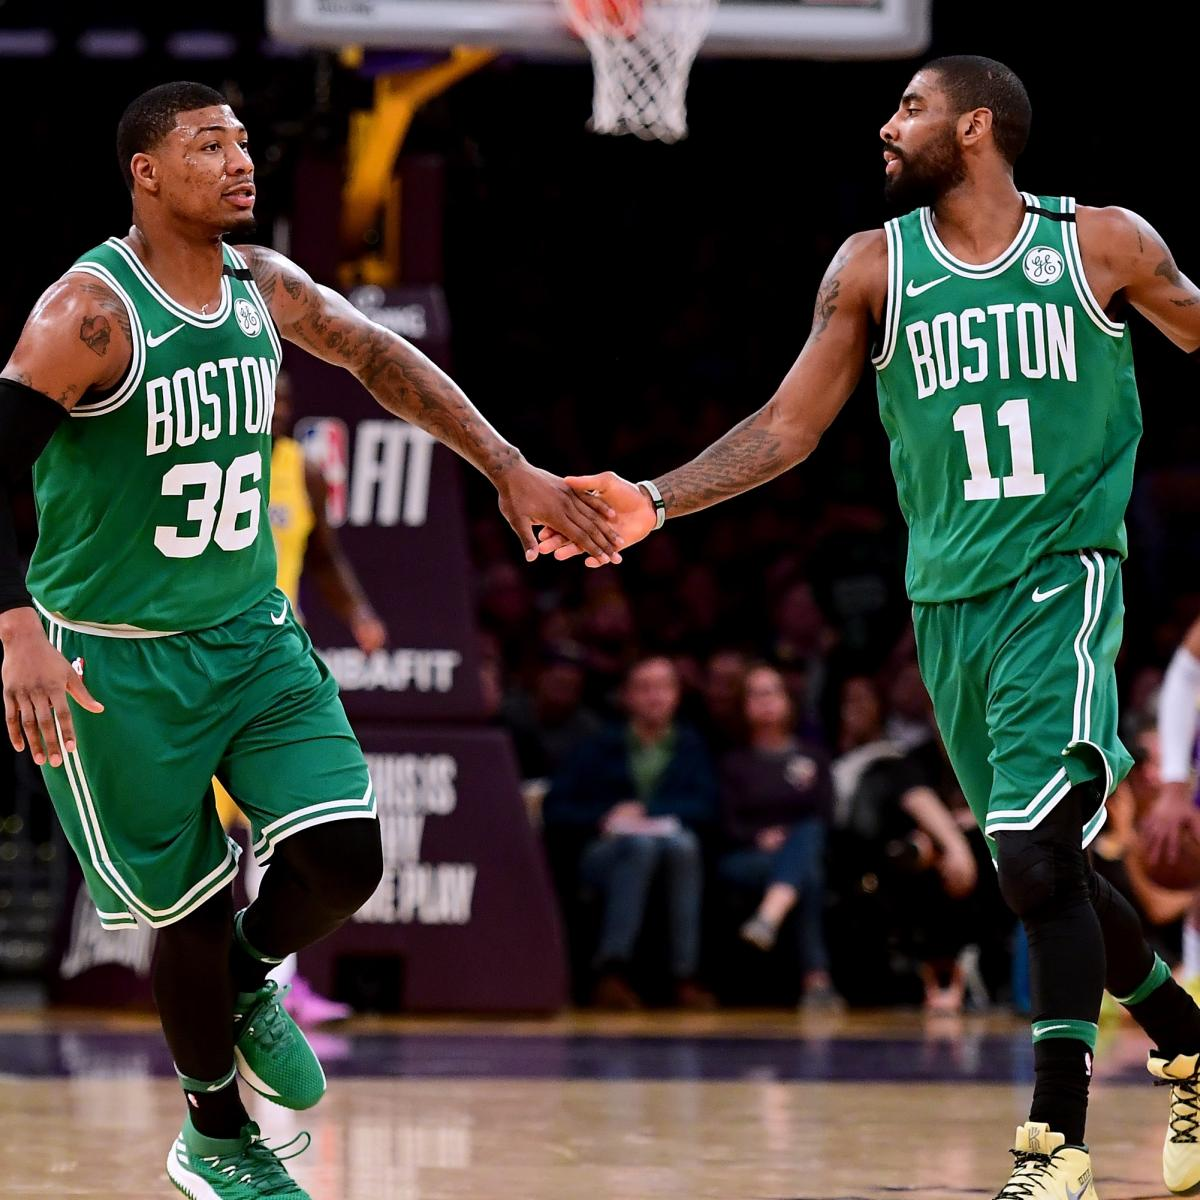 Pressure Keeps Building for Kyrie Irving, Boston Celtics as Injuries Pile Up